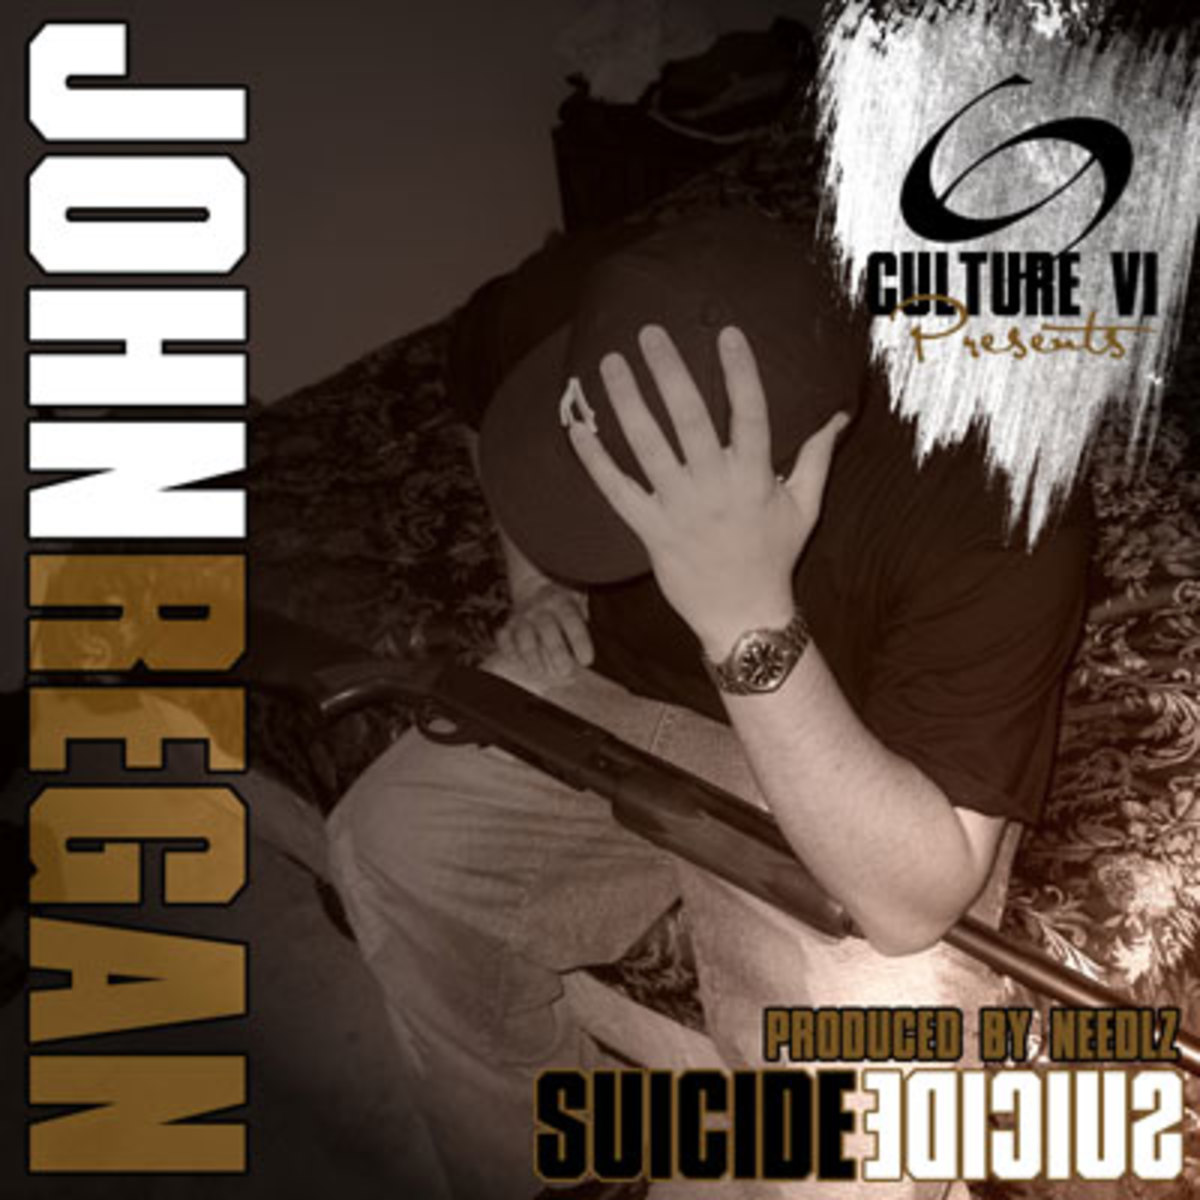 johnregan-suicide.jpg